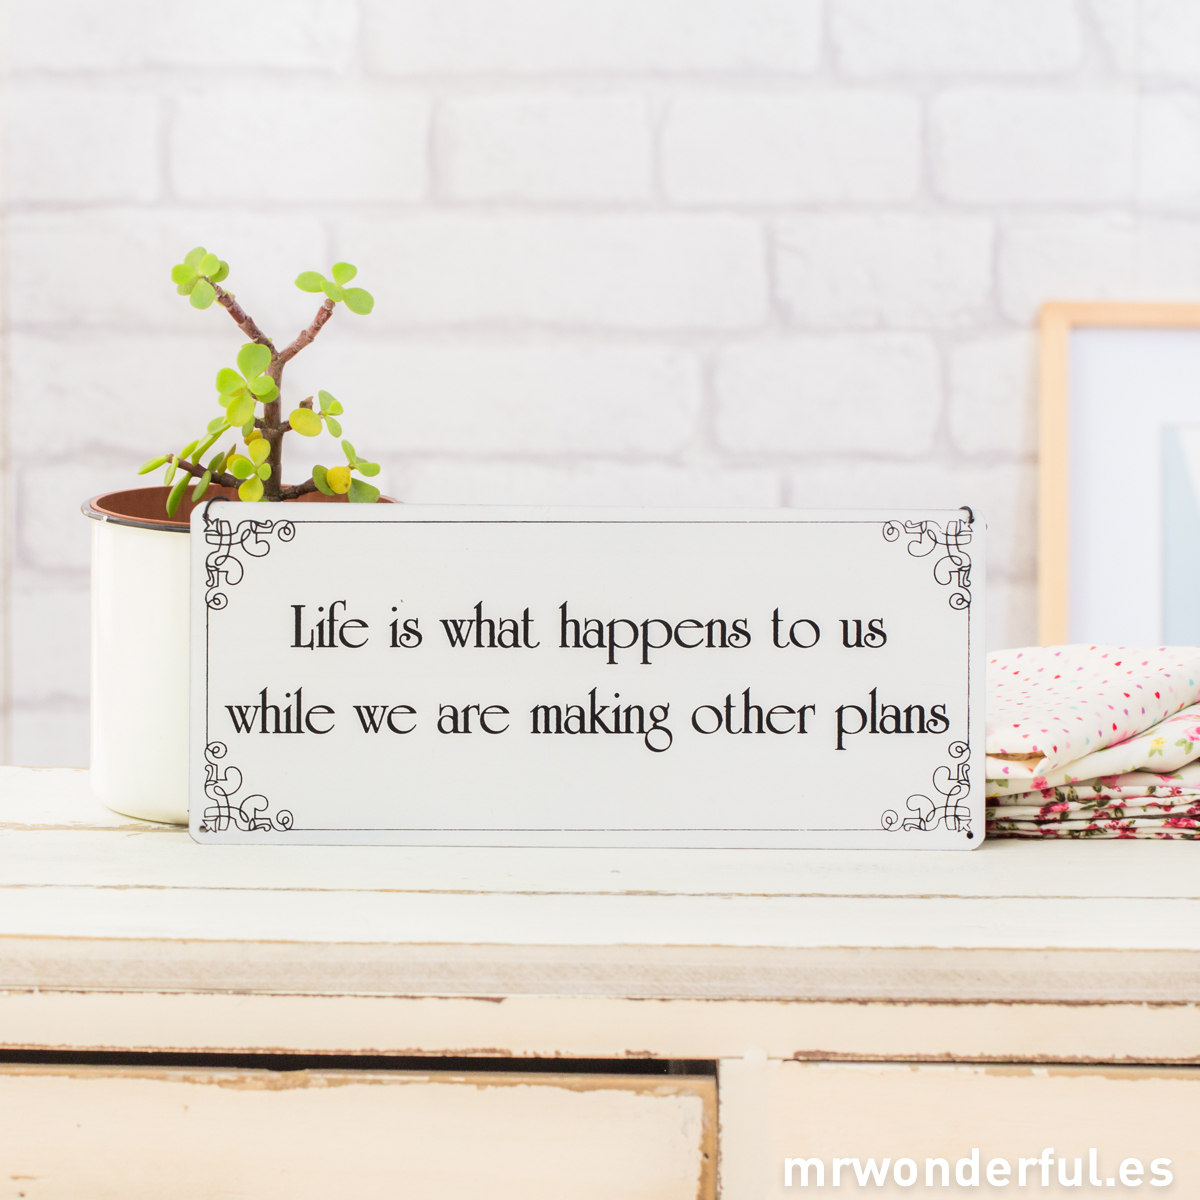 mrwonderful_WP1067_3_life-is-what-happens-2